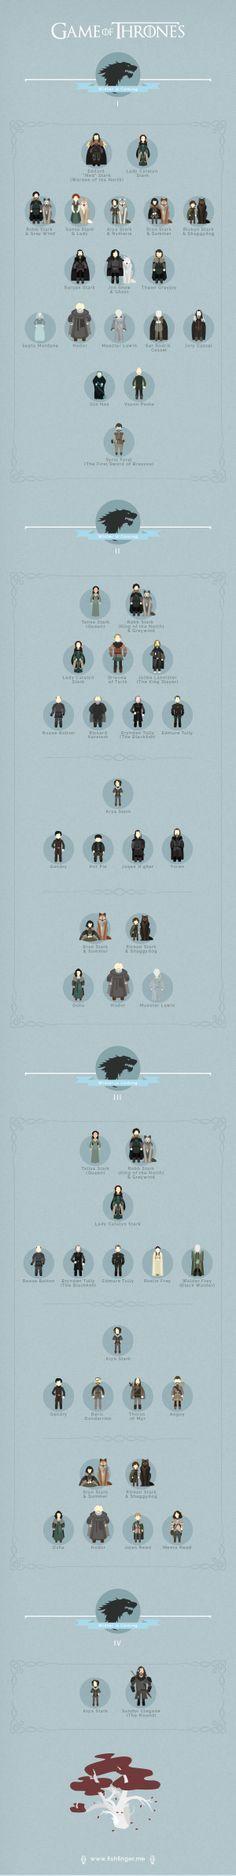 personagens characters